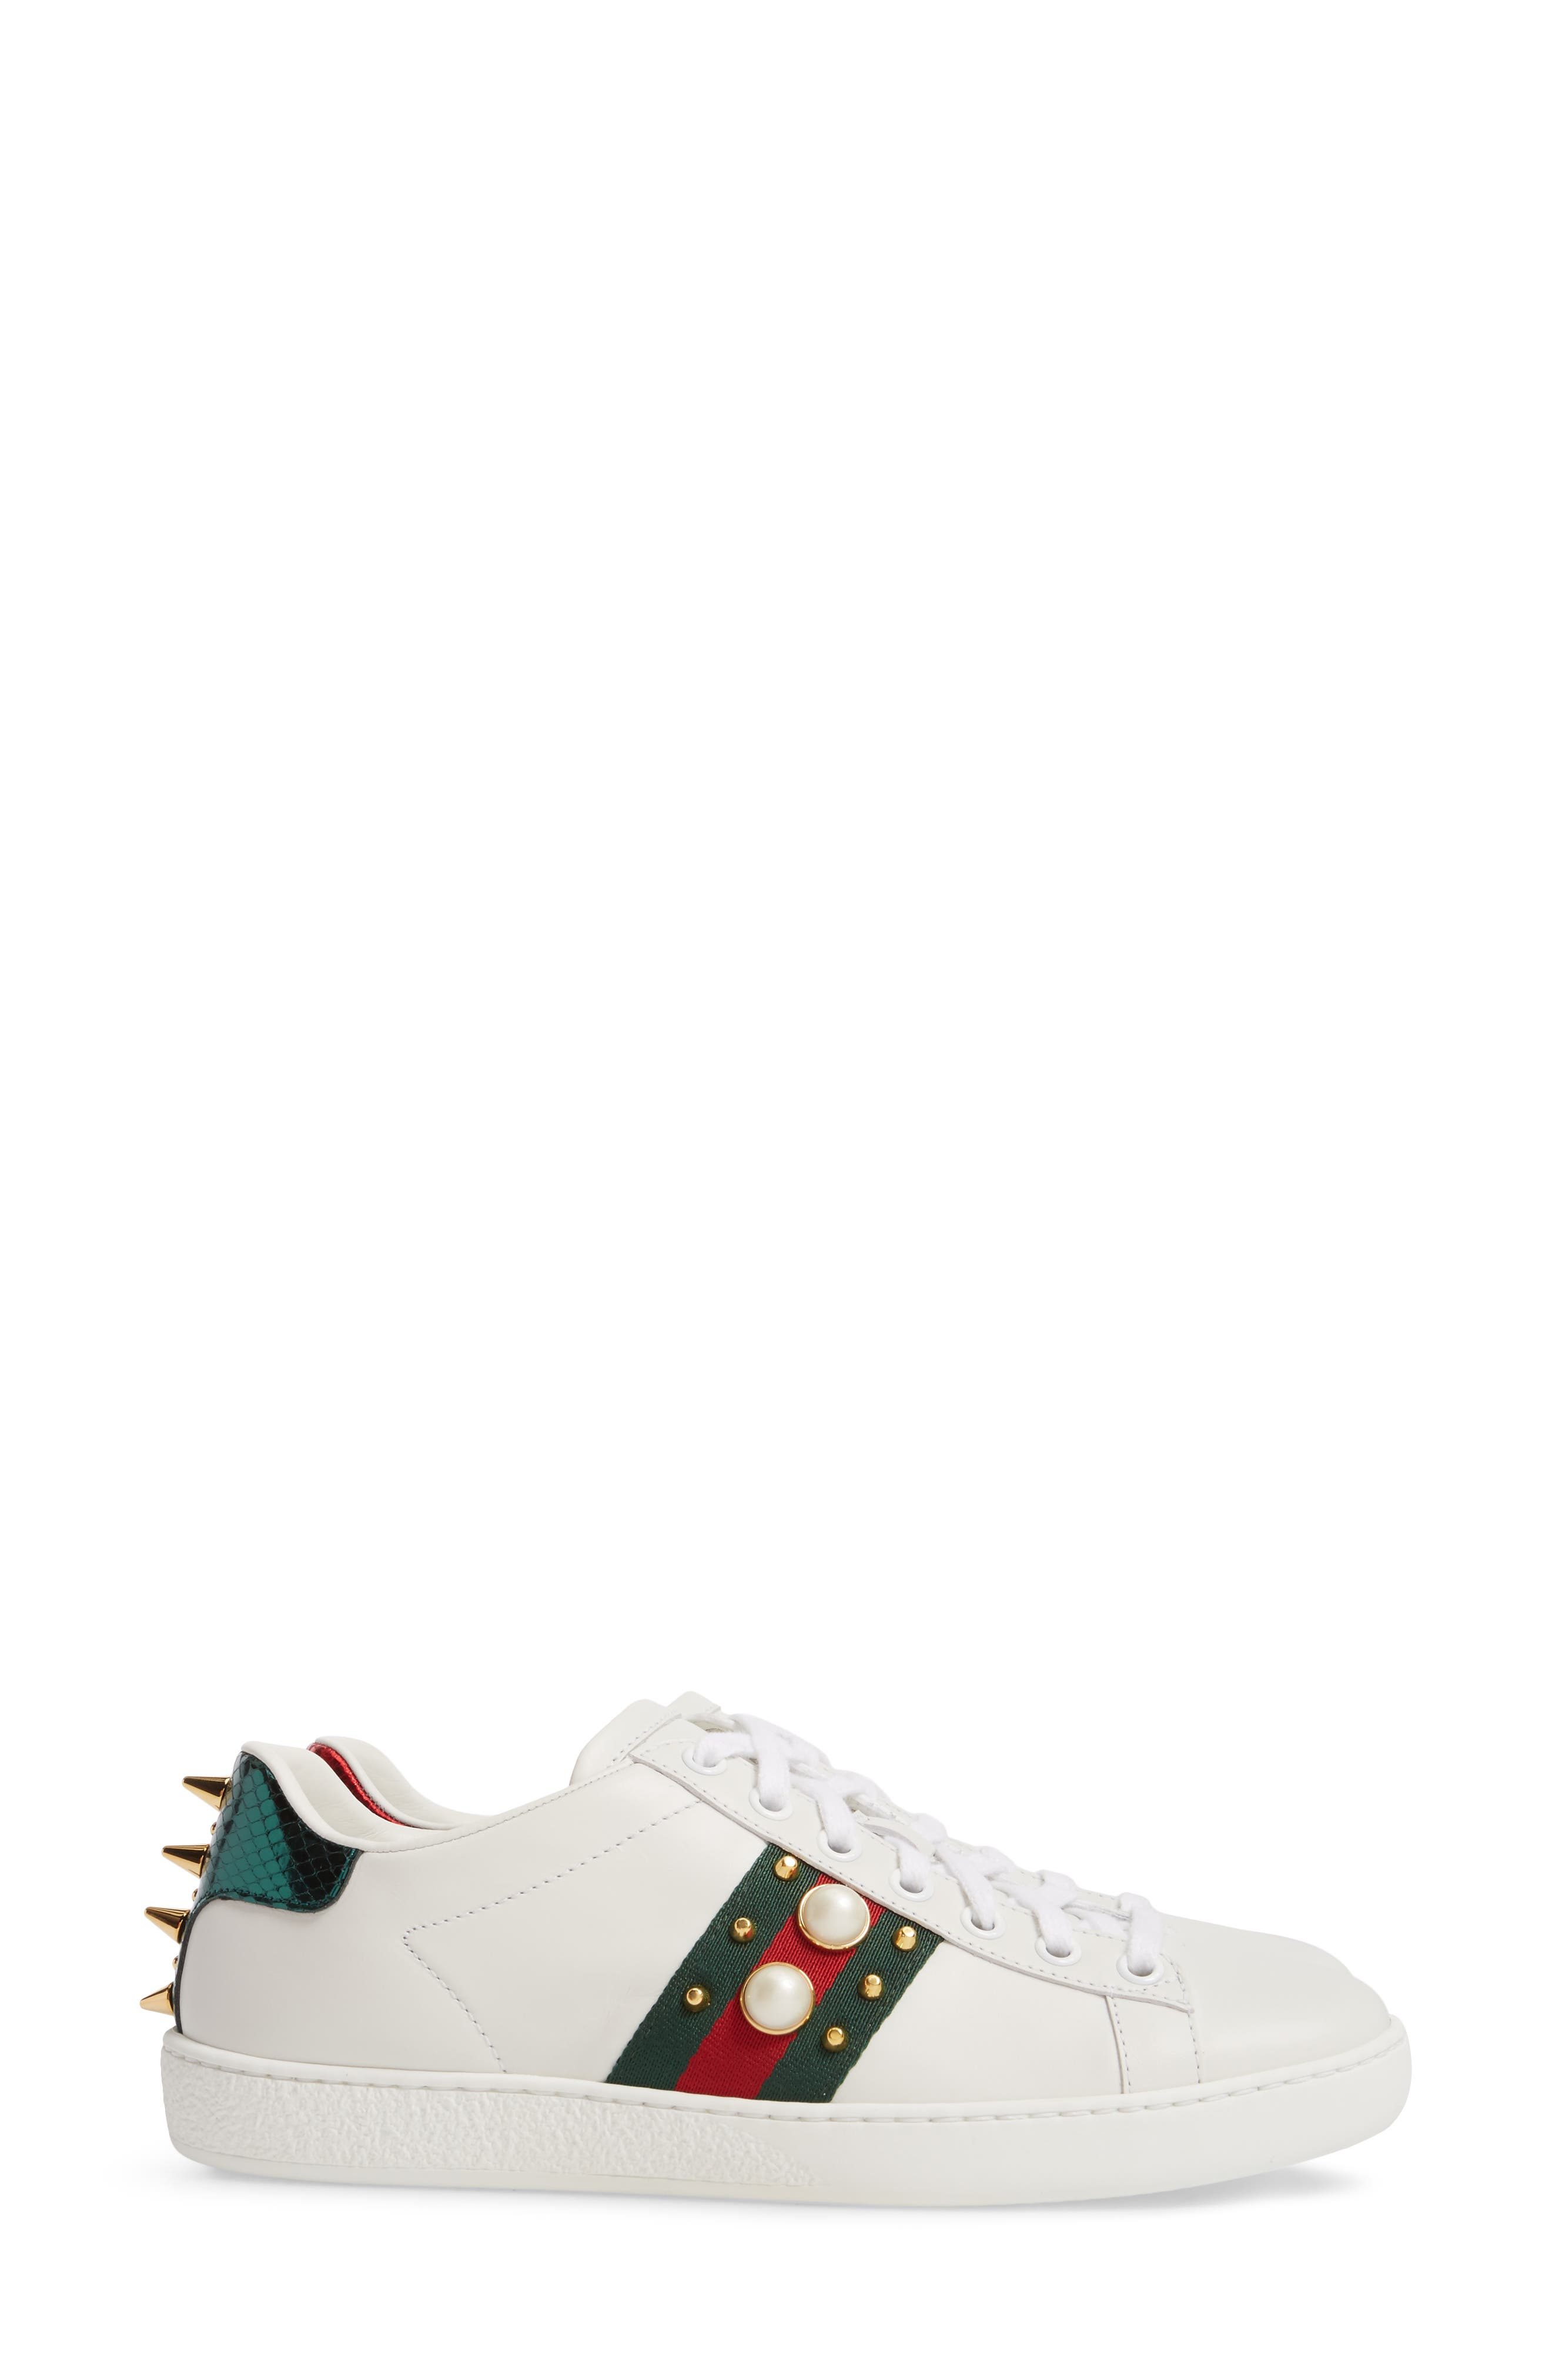 GUCCI, New Ace Low Top Sneaker, Alternate thumbnail 3, color, WHITE/ RED